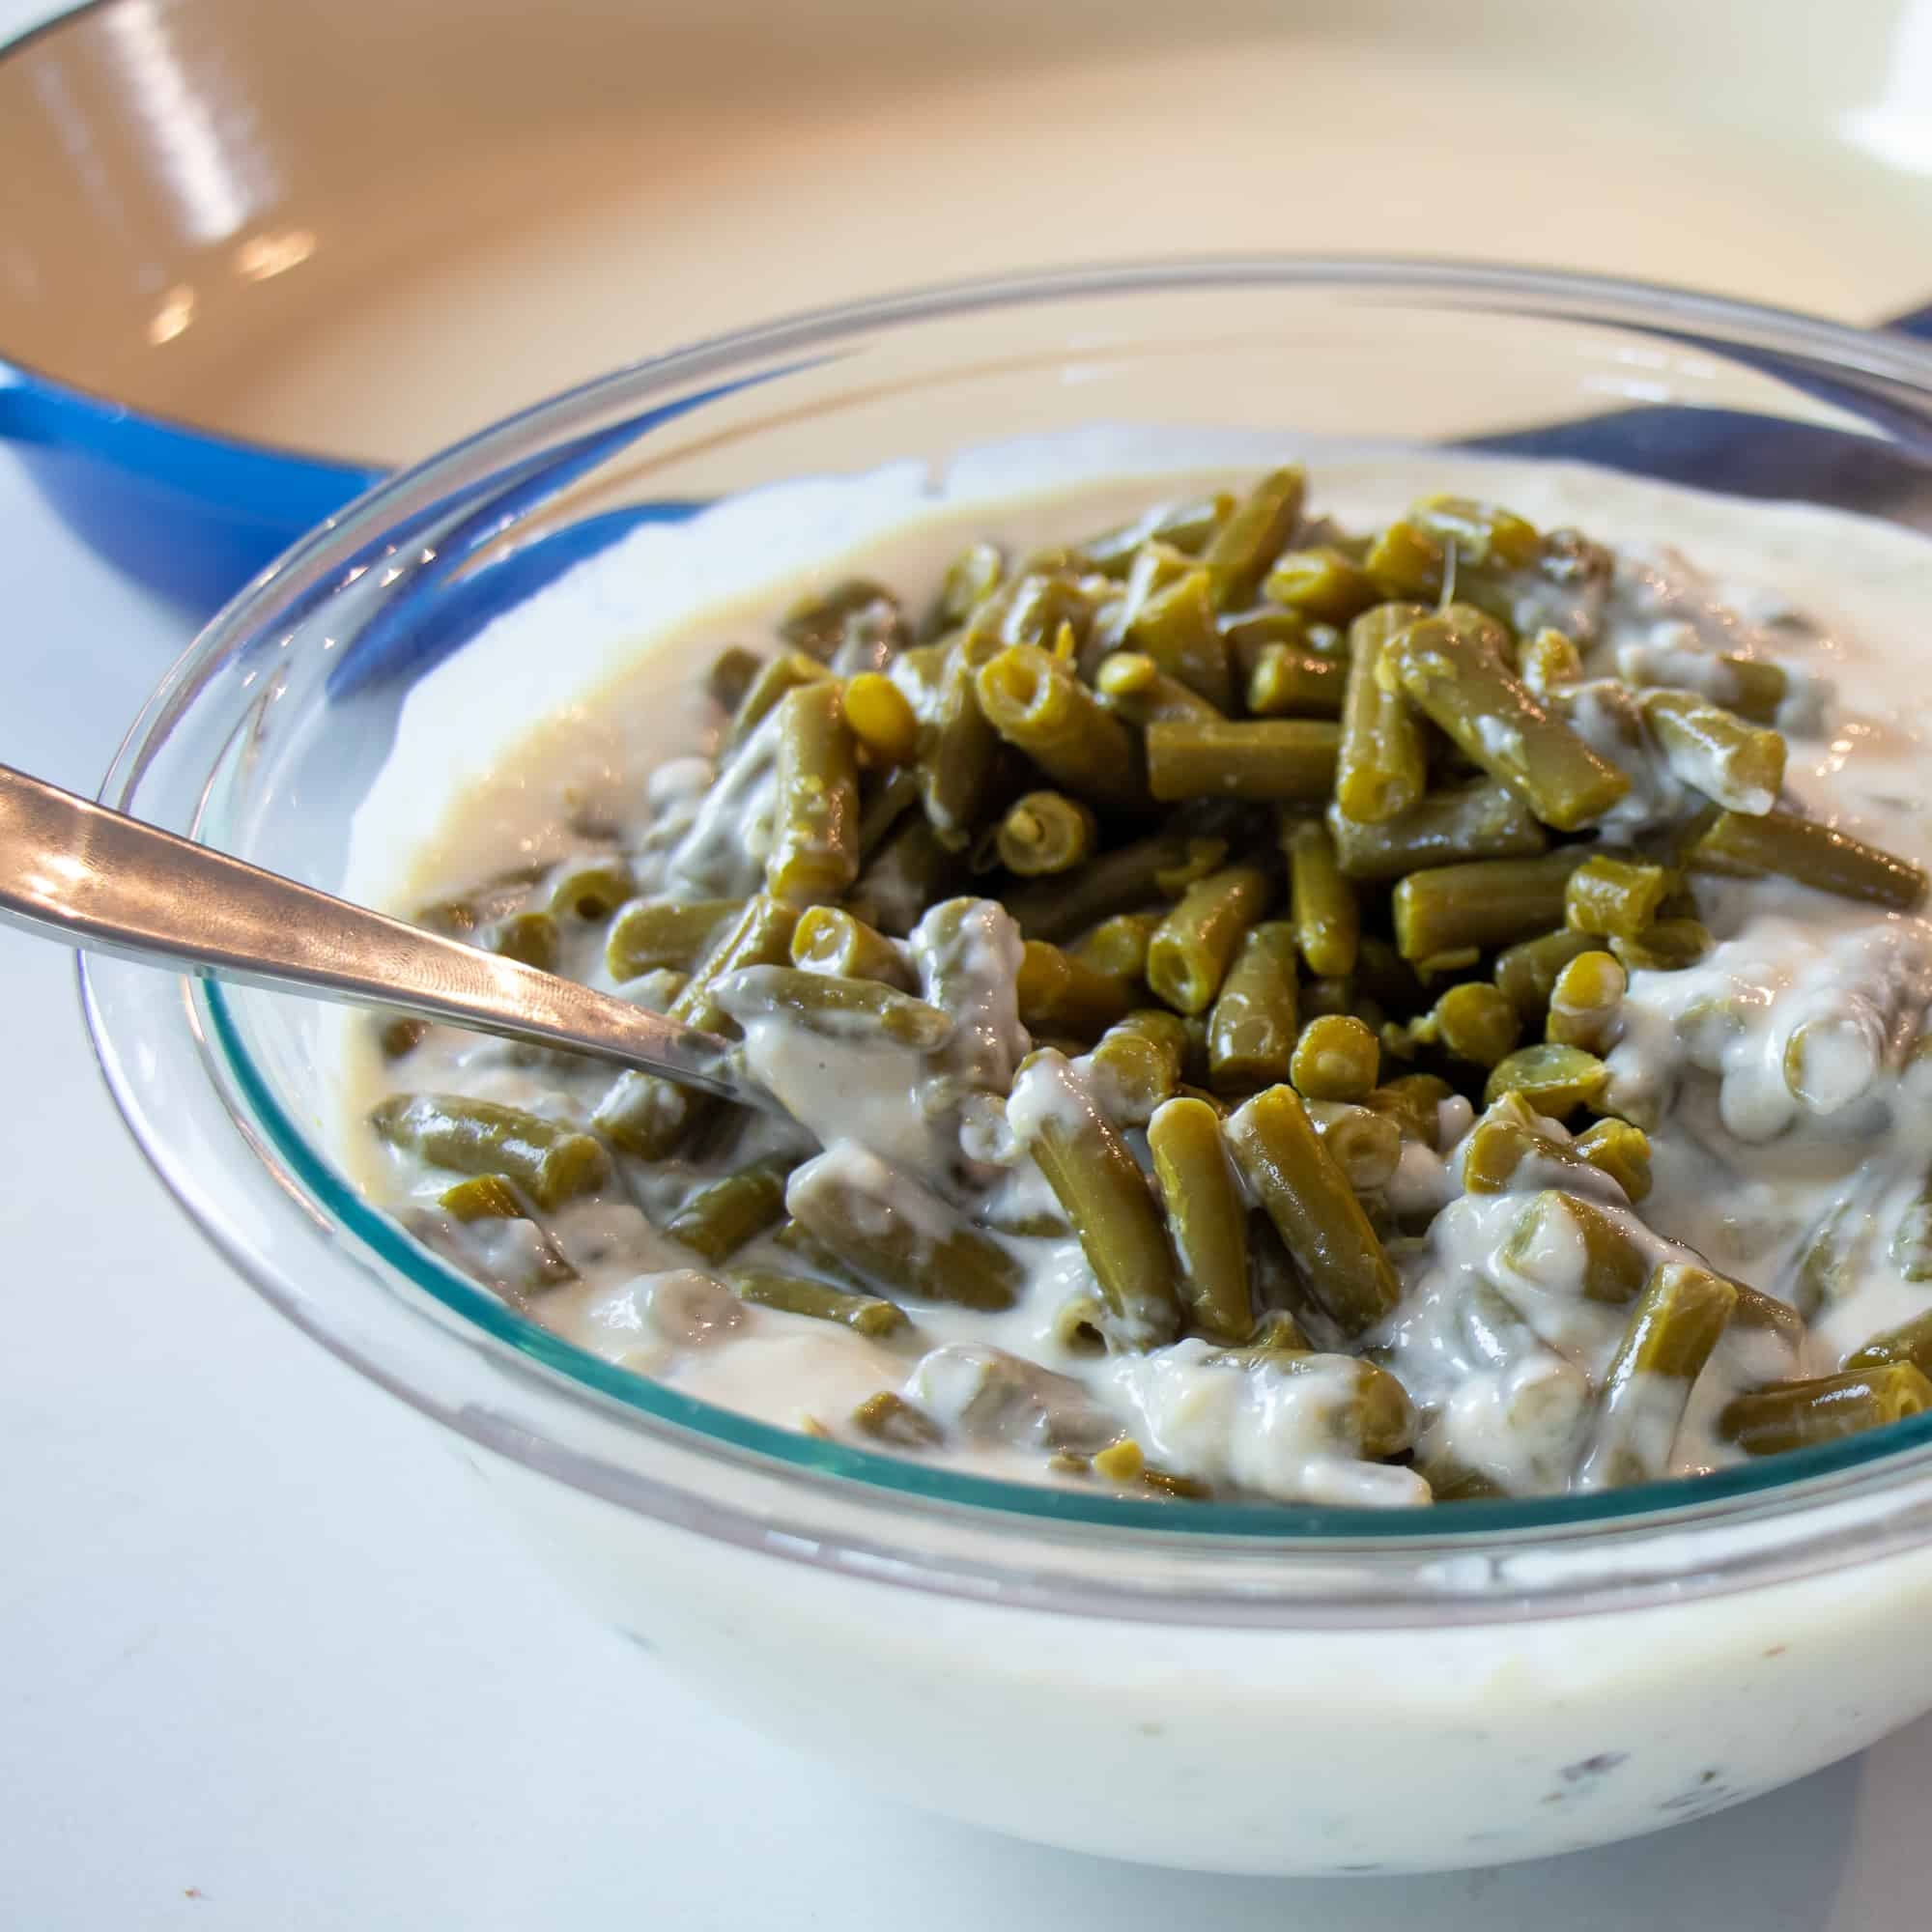 Mix the green beans in with the condensed soup and milk